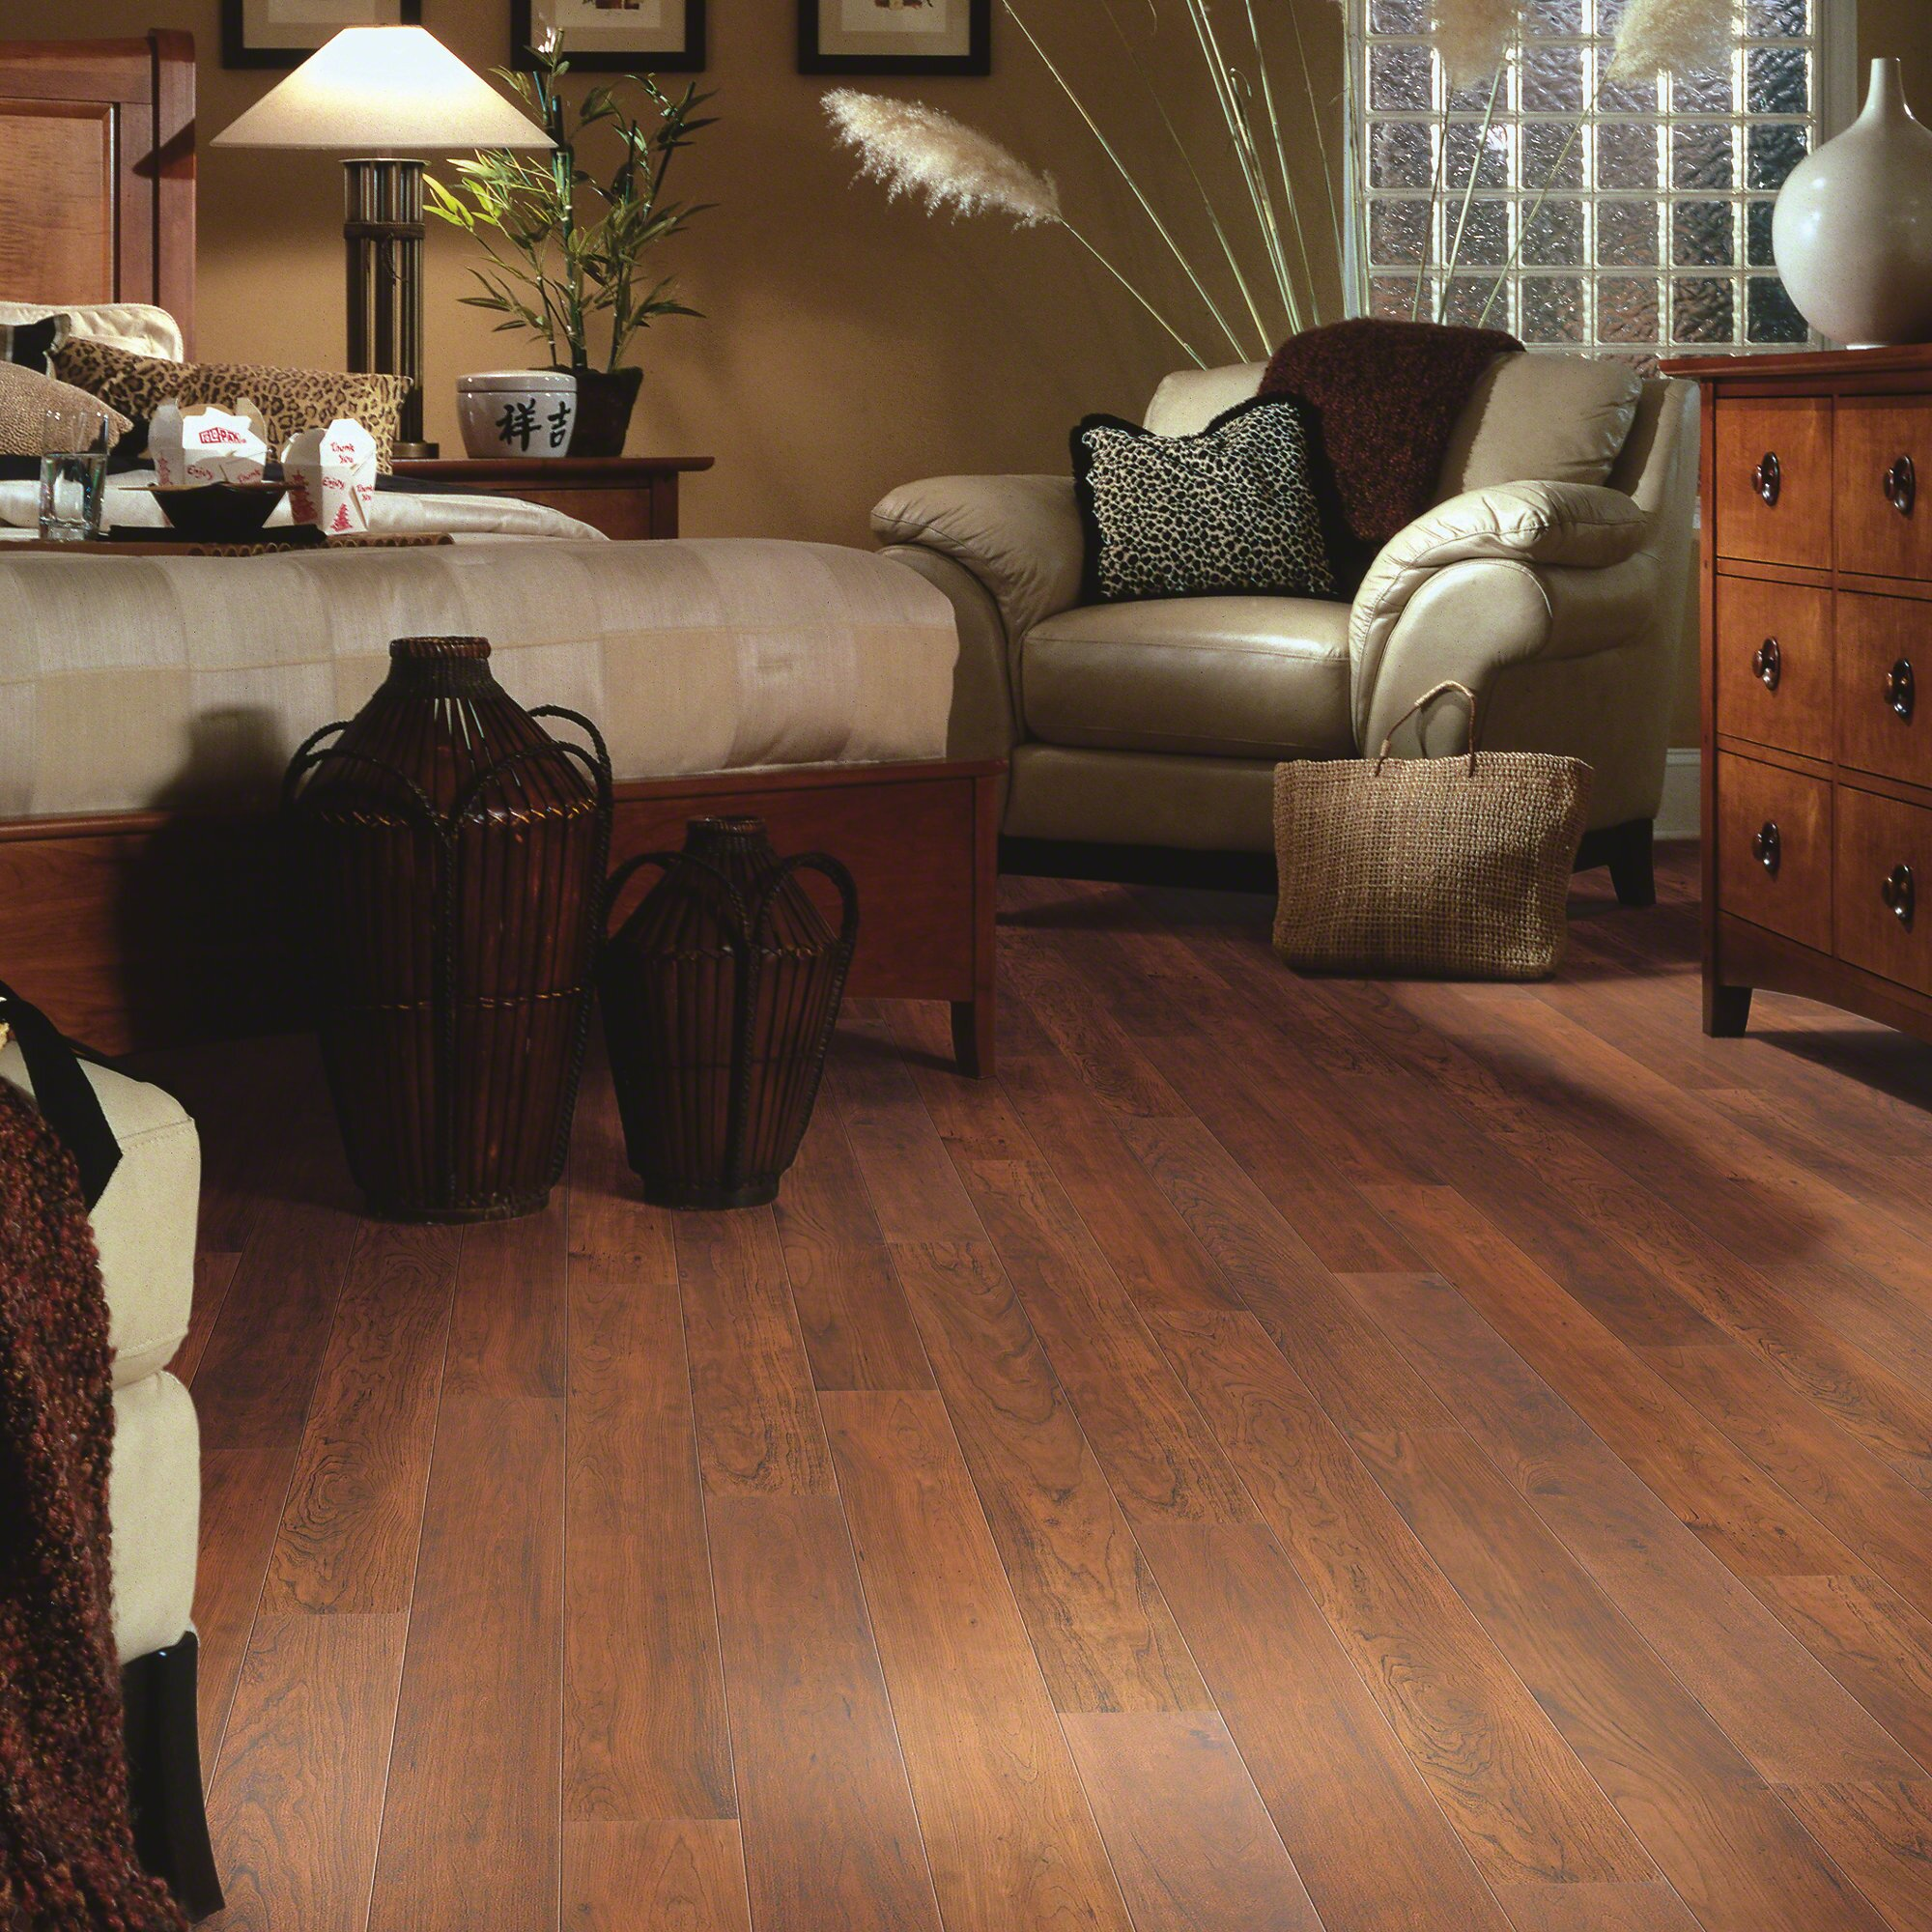 Cherry Laminate Flooring laminated flooring groovy herry laminate flooring sfi laminate Caribbean Vue Samara 5 X 48 X 8mm Cherry Laminate